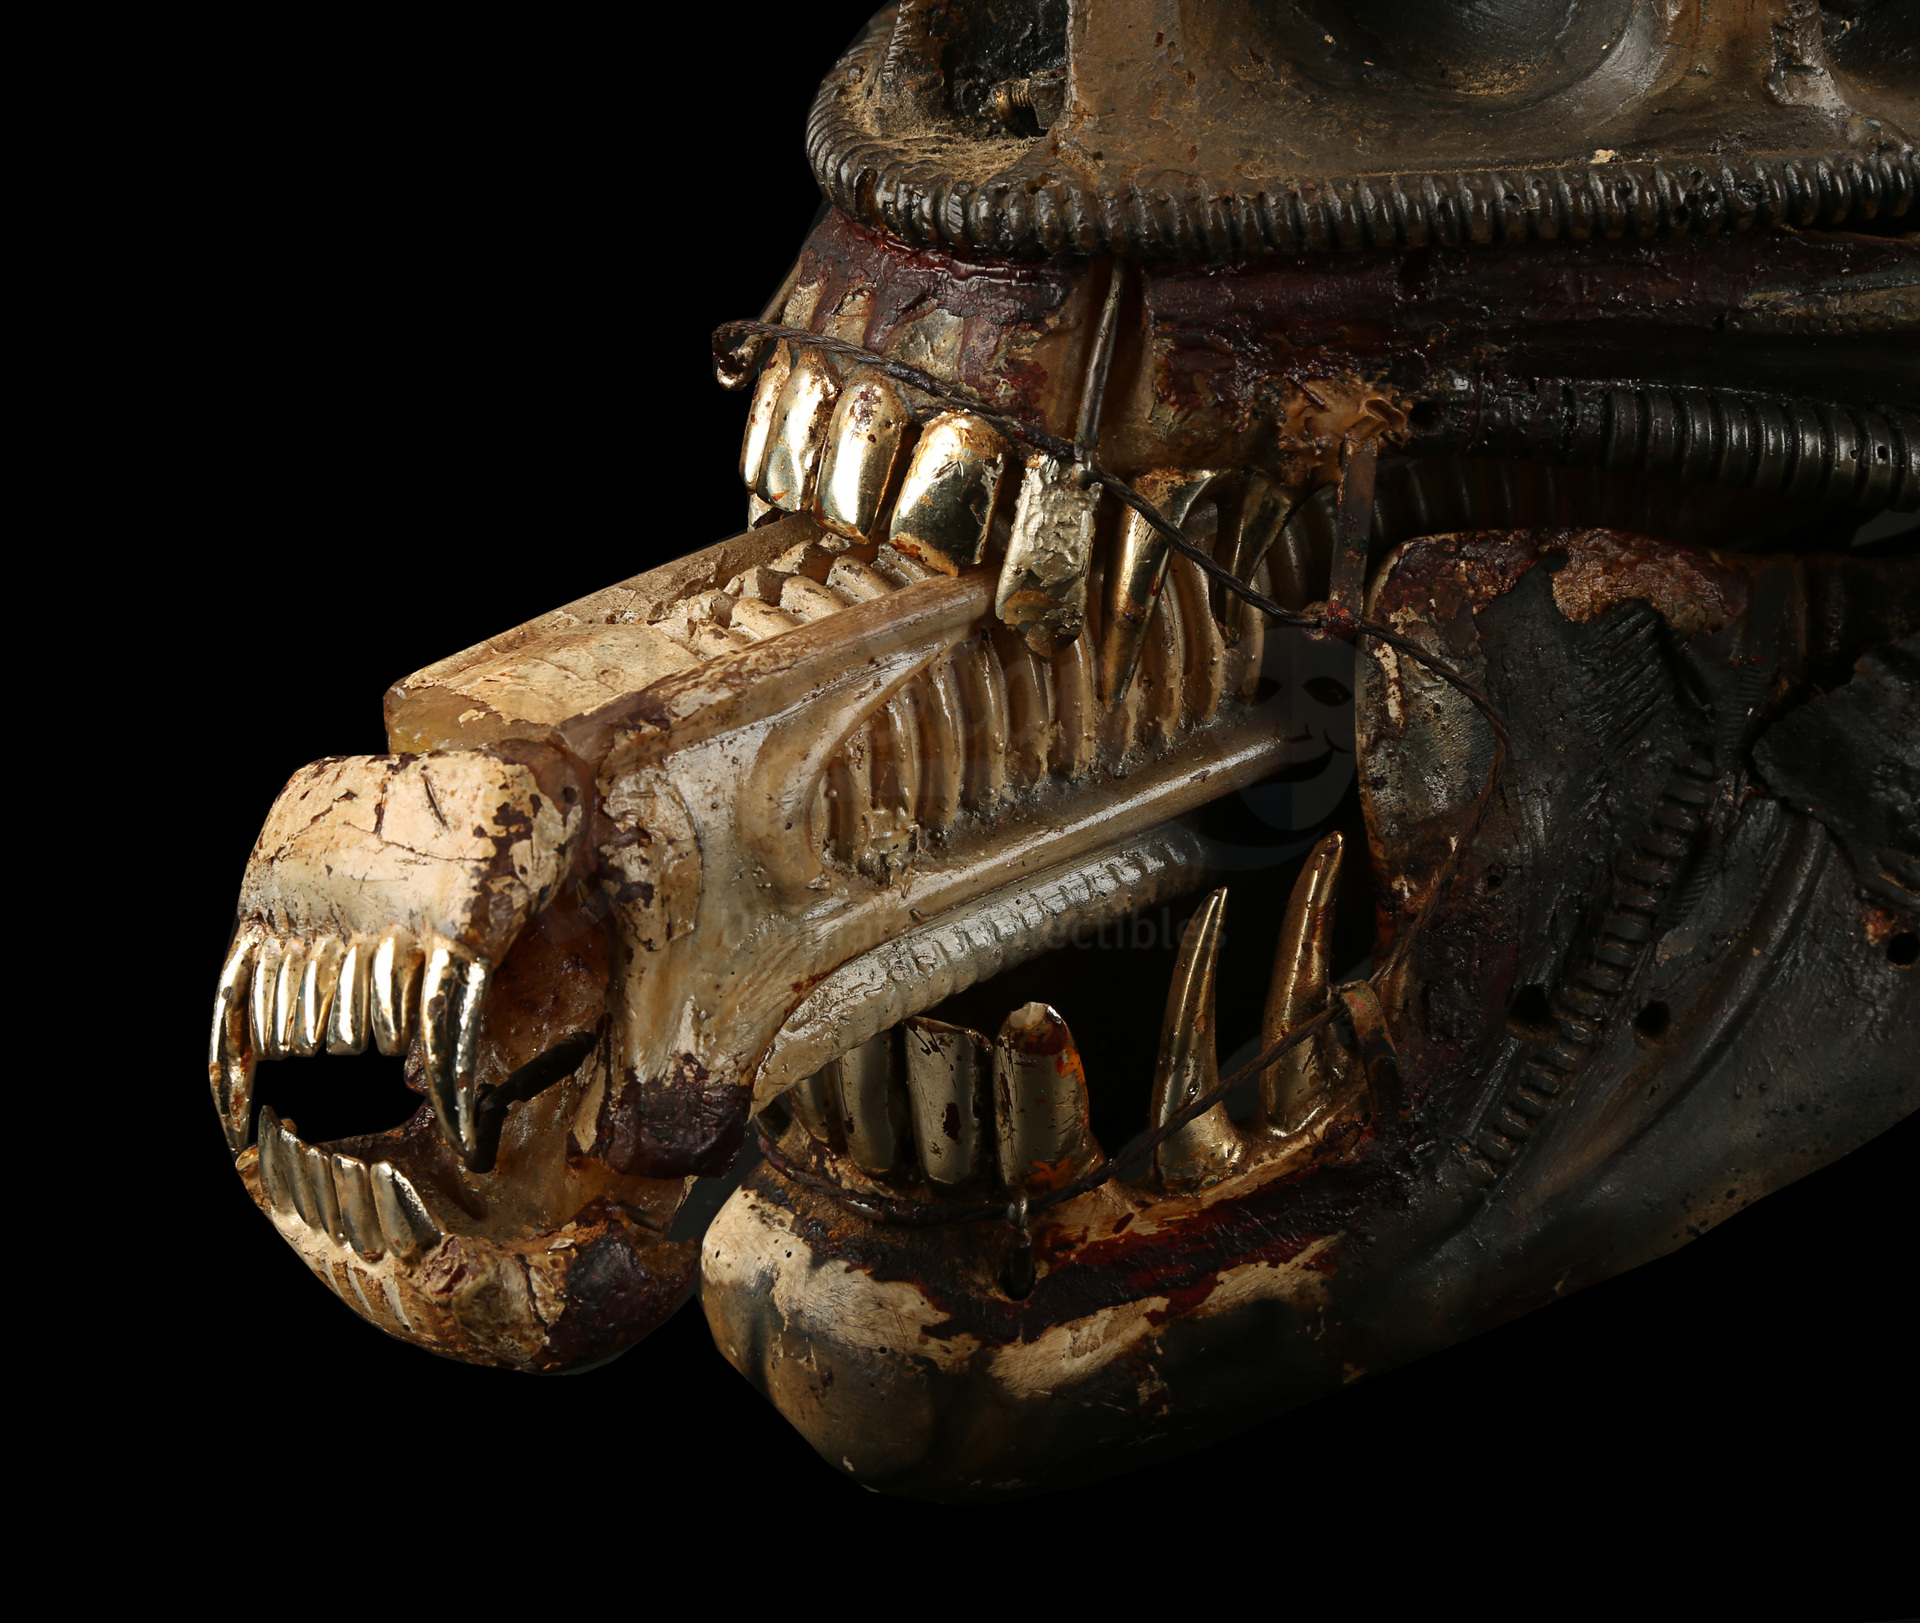 ALIEN (1979) - H.R. Giger-designed Special Effects Mechanical Alien Head - Image 5 of 34